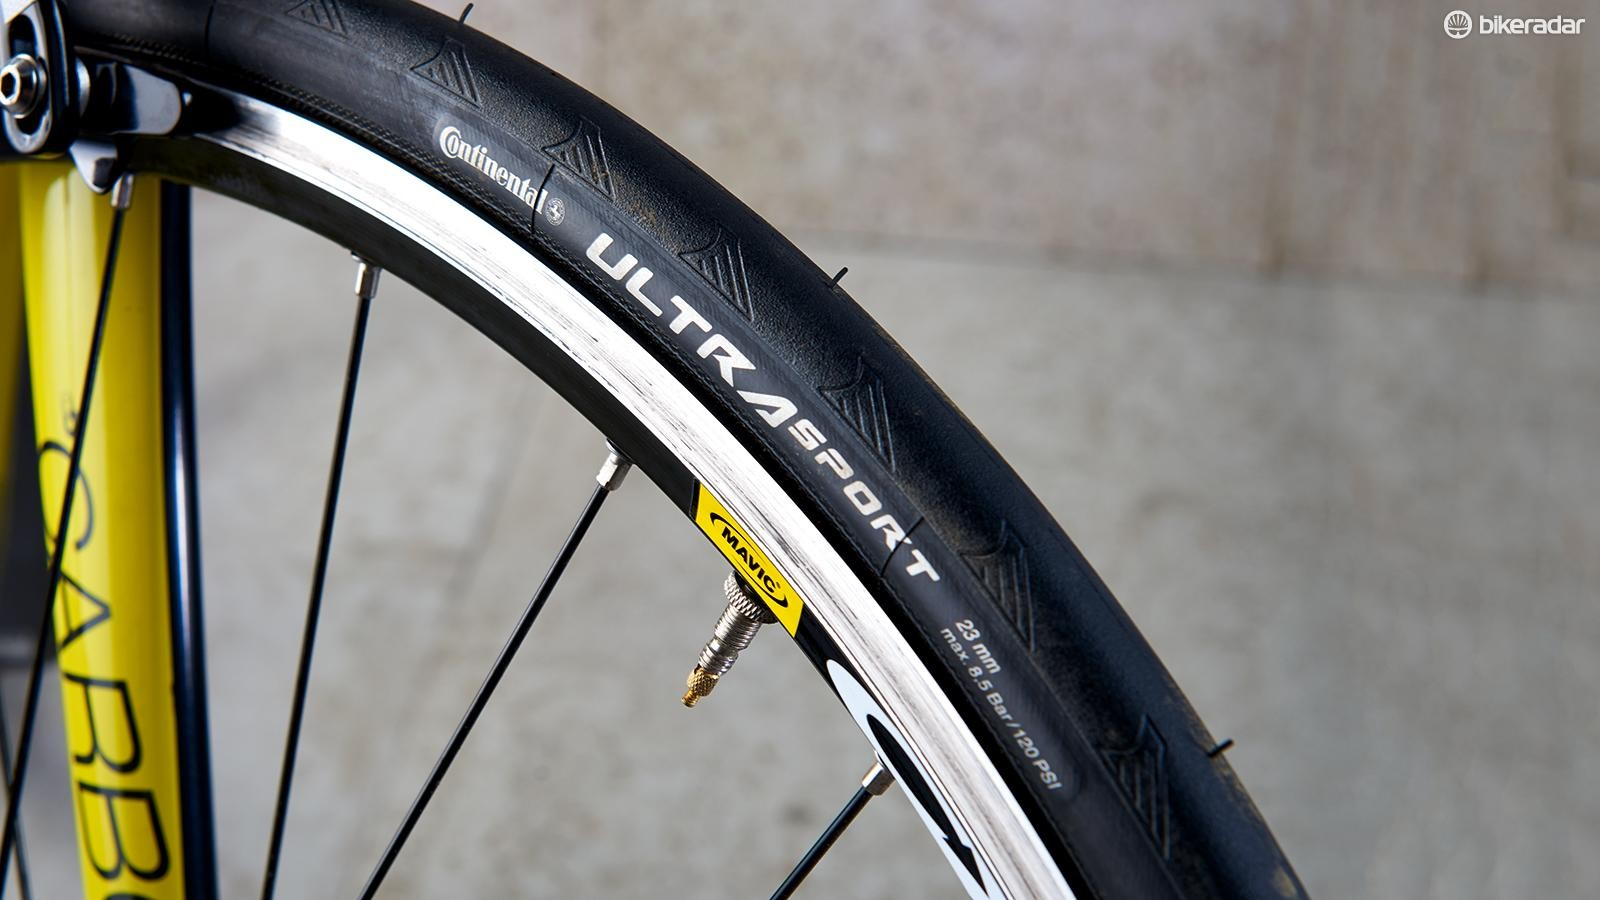 The 25mm Continental Ultra Sport tyres proved to be impressive performers